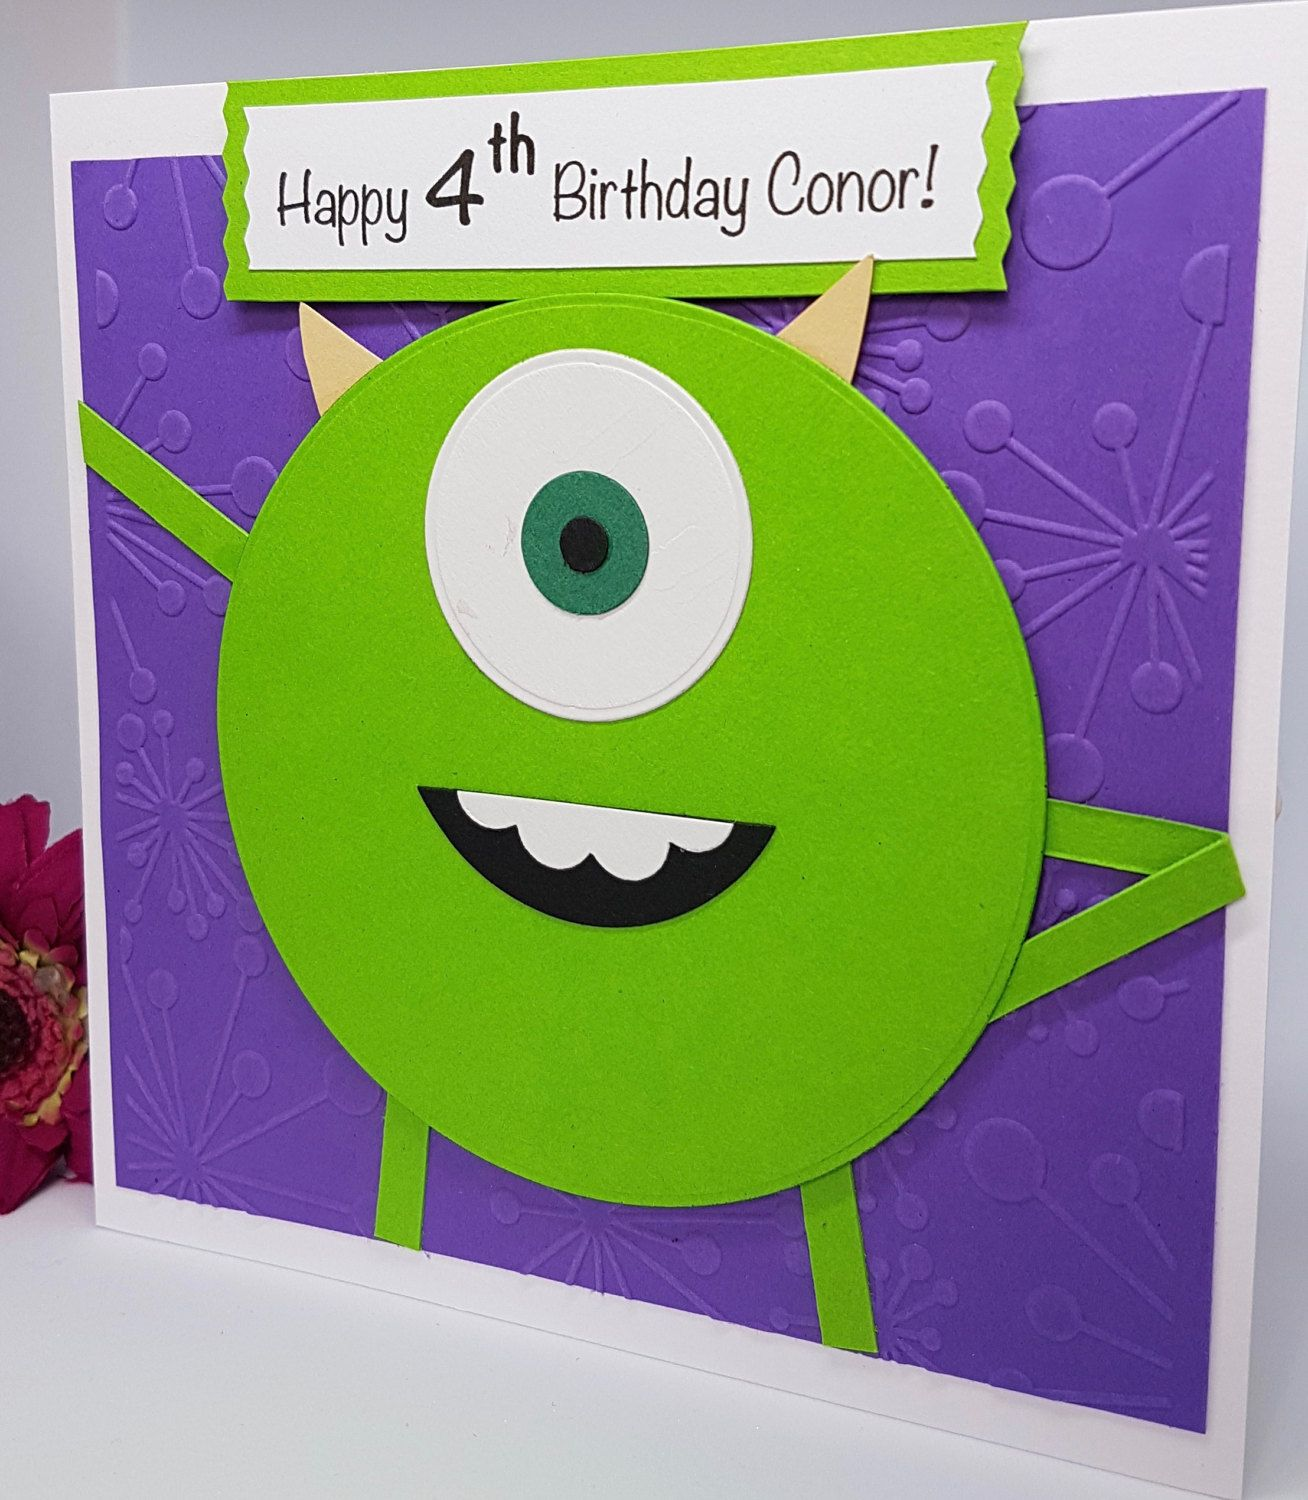 Personalised Mike Wazowski Monsters Inc Character Birthday Card Handmade Bd51 By Brightcraftbysharon On Etsy Kids Cards Happy Birthday Cards Special Cards